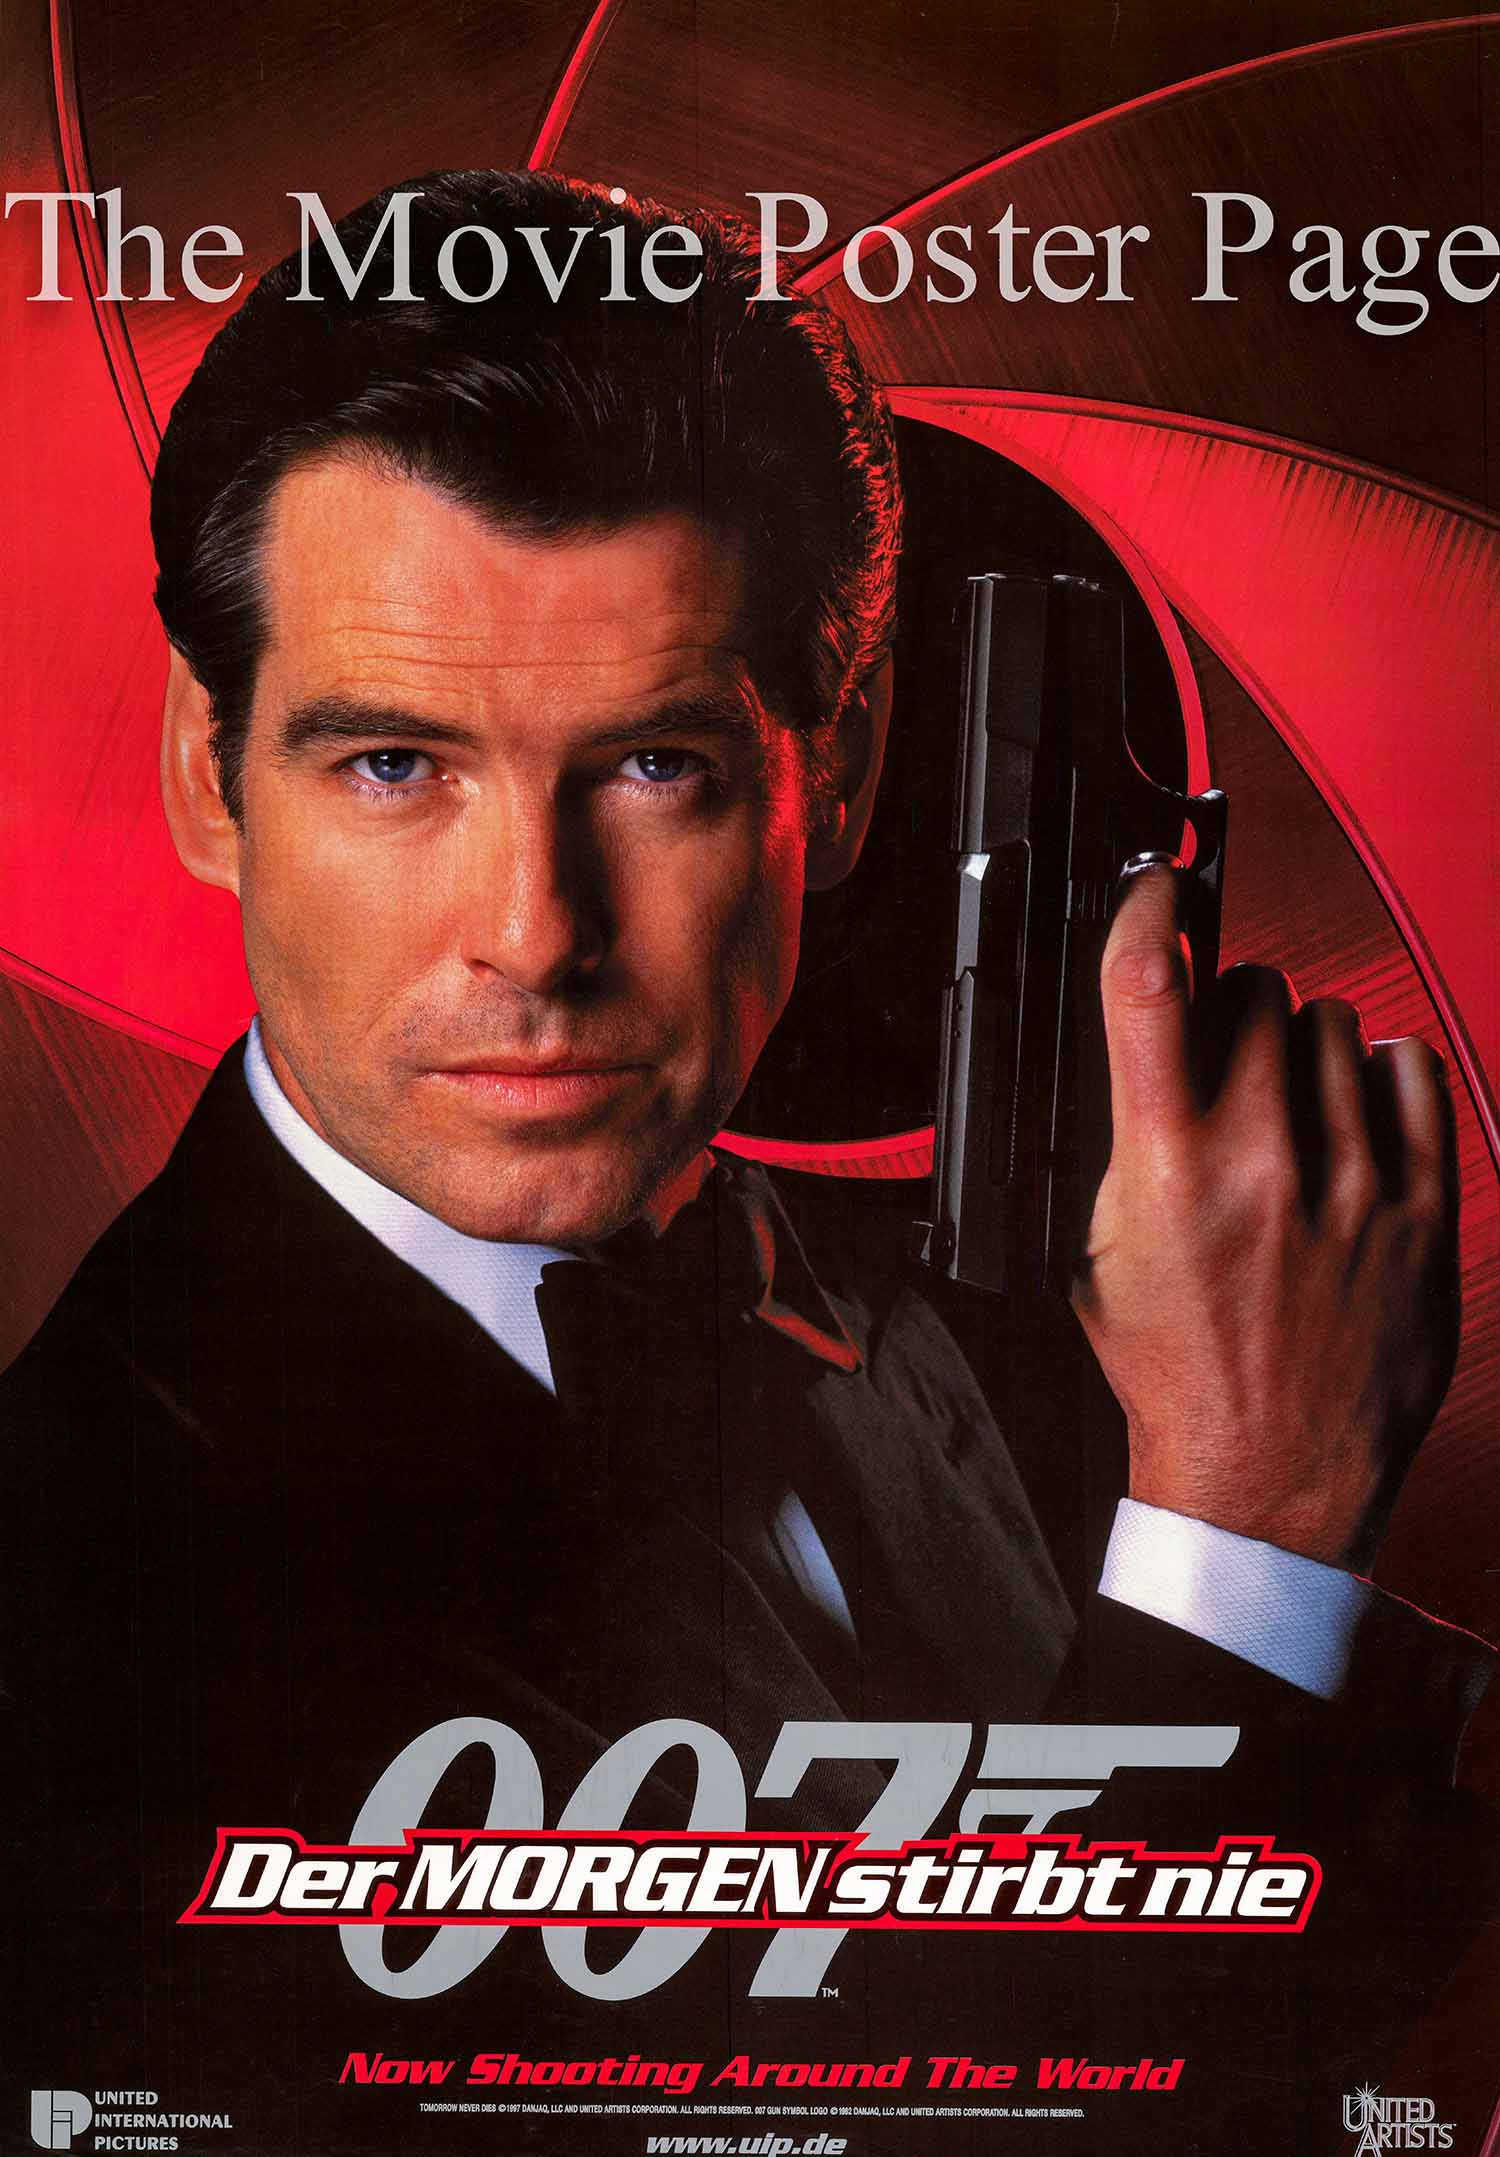 This image shows the German promotional poster for the 1997 James Bond film <i>Tomorrow Never Dies</i> starring Pierce Brosnan as James Bond.